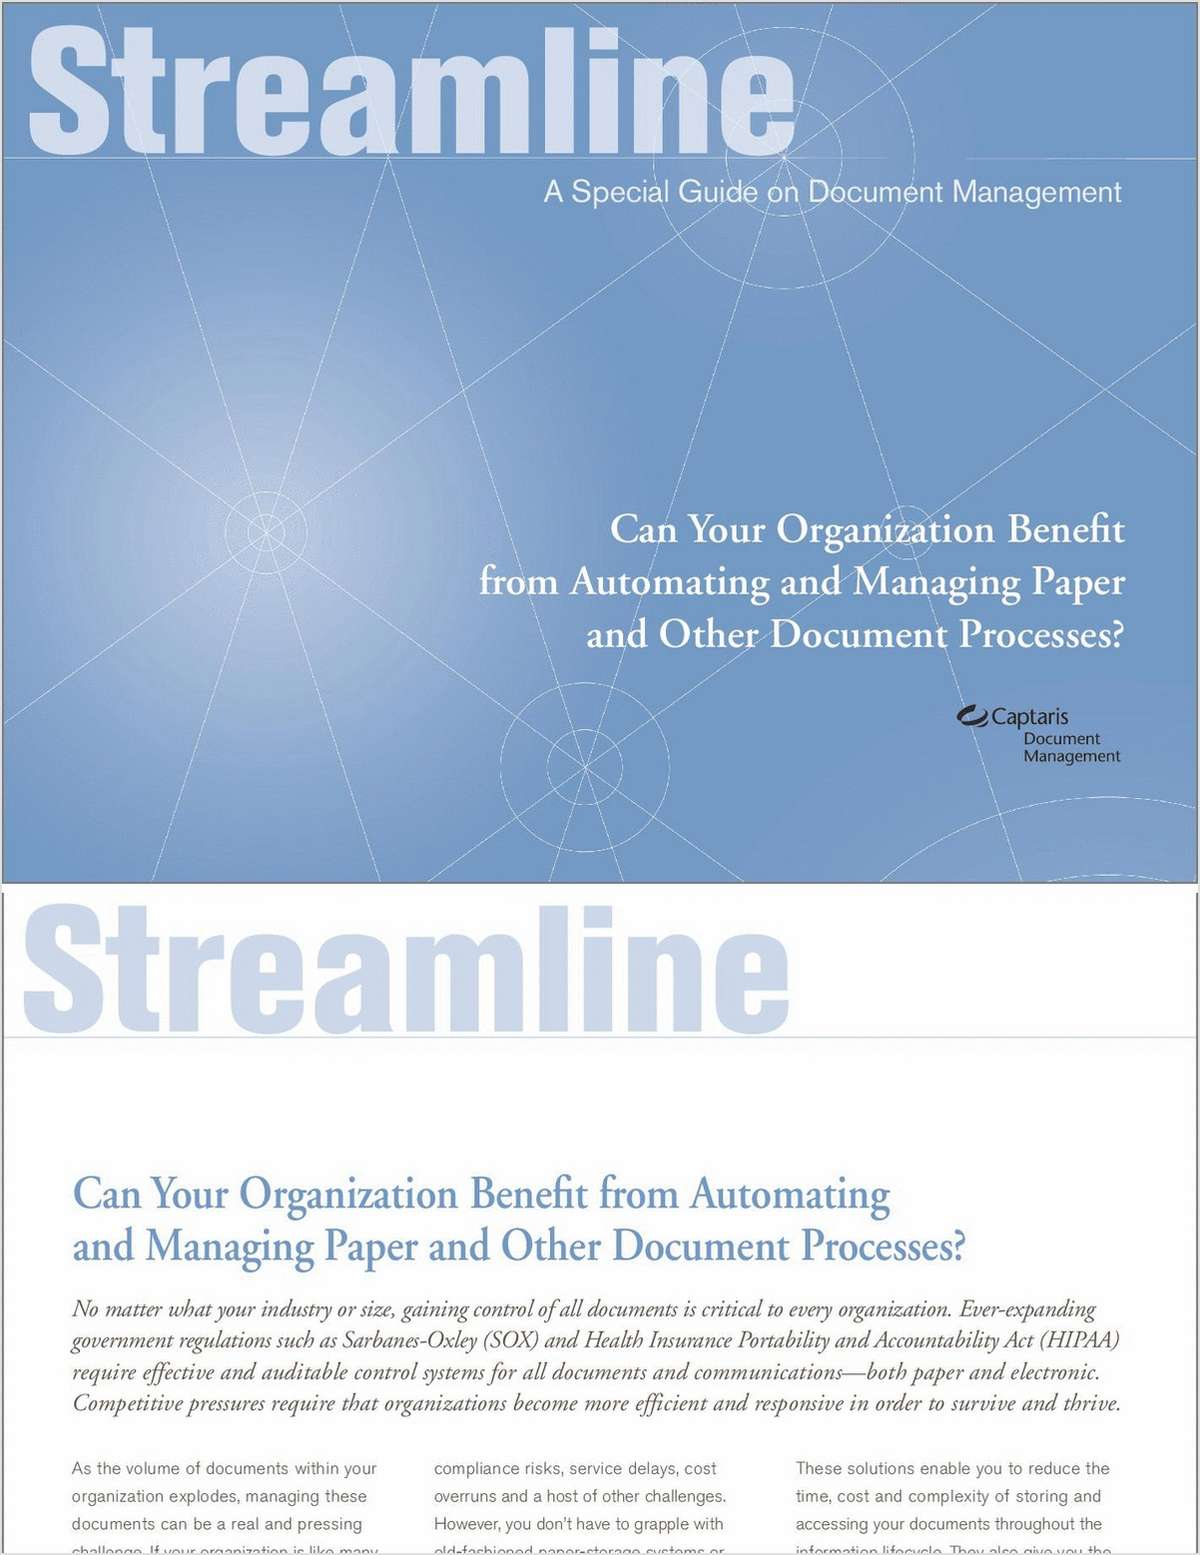 Automating Paper and Other Document Processes: Solutions and Benefits